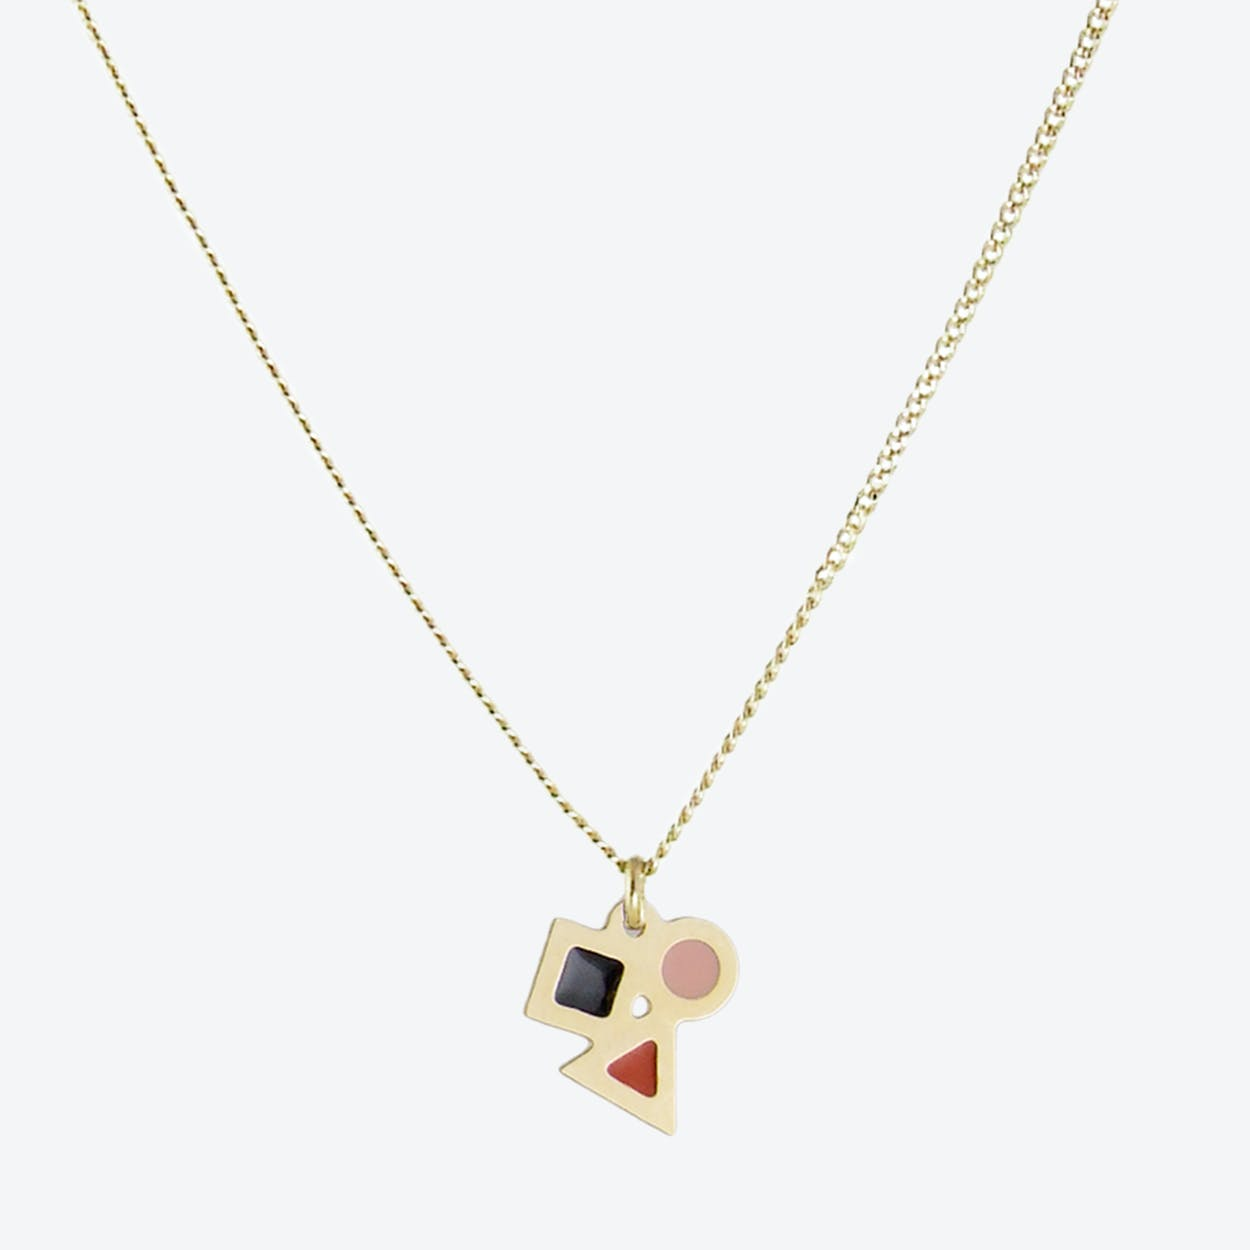 Tiny Geometric Pendant Necklace in Black, Blush, and Rust